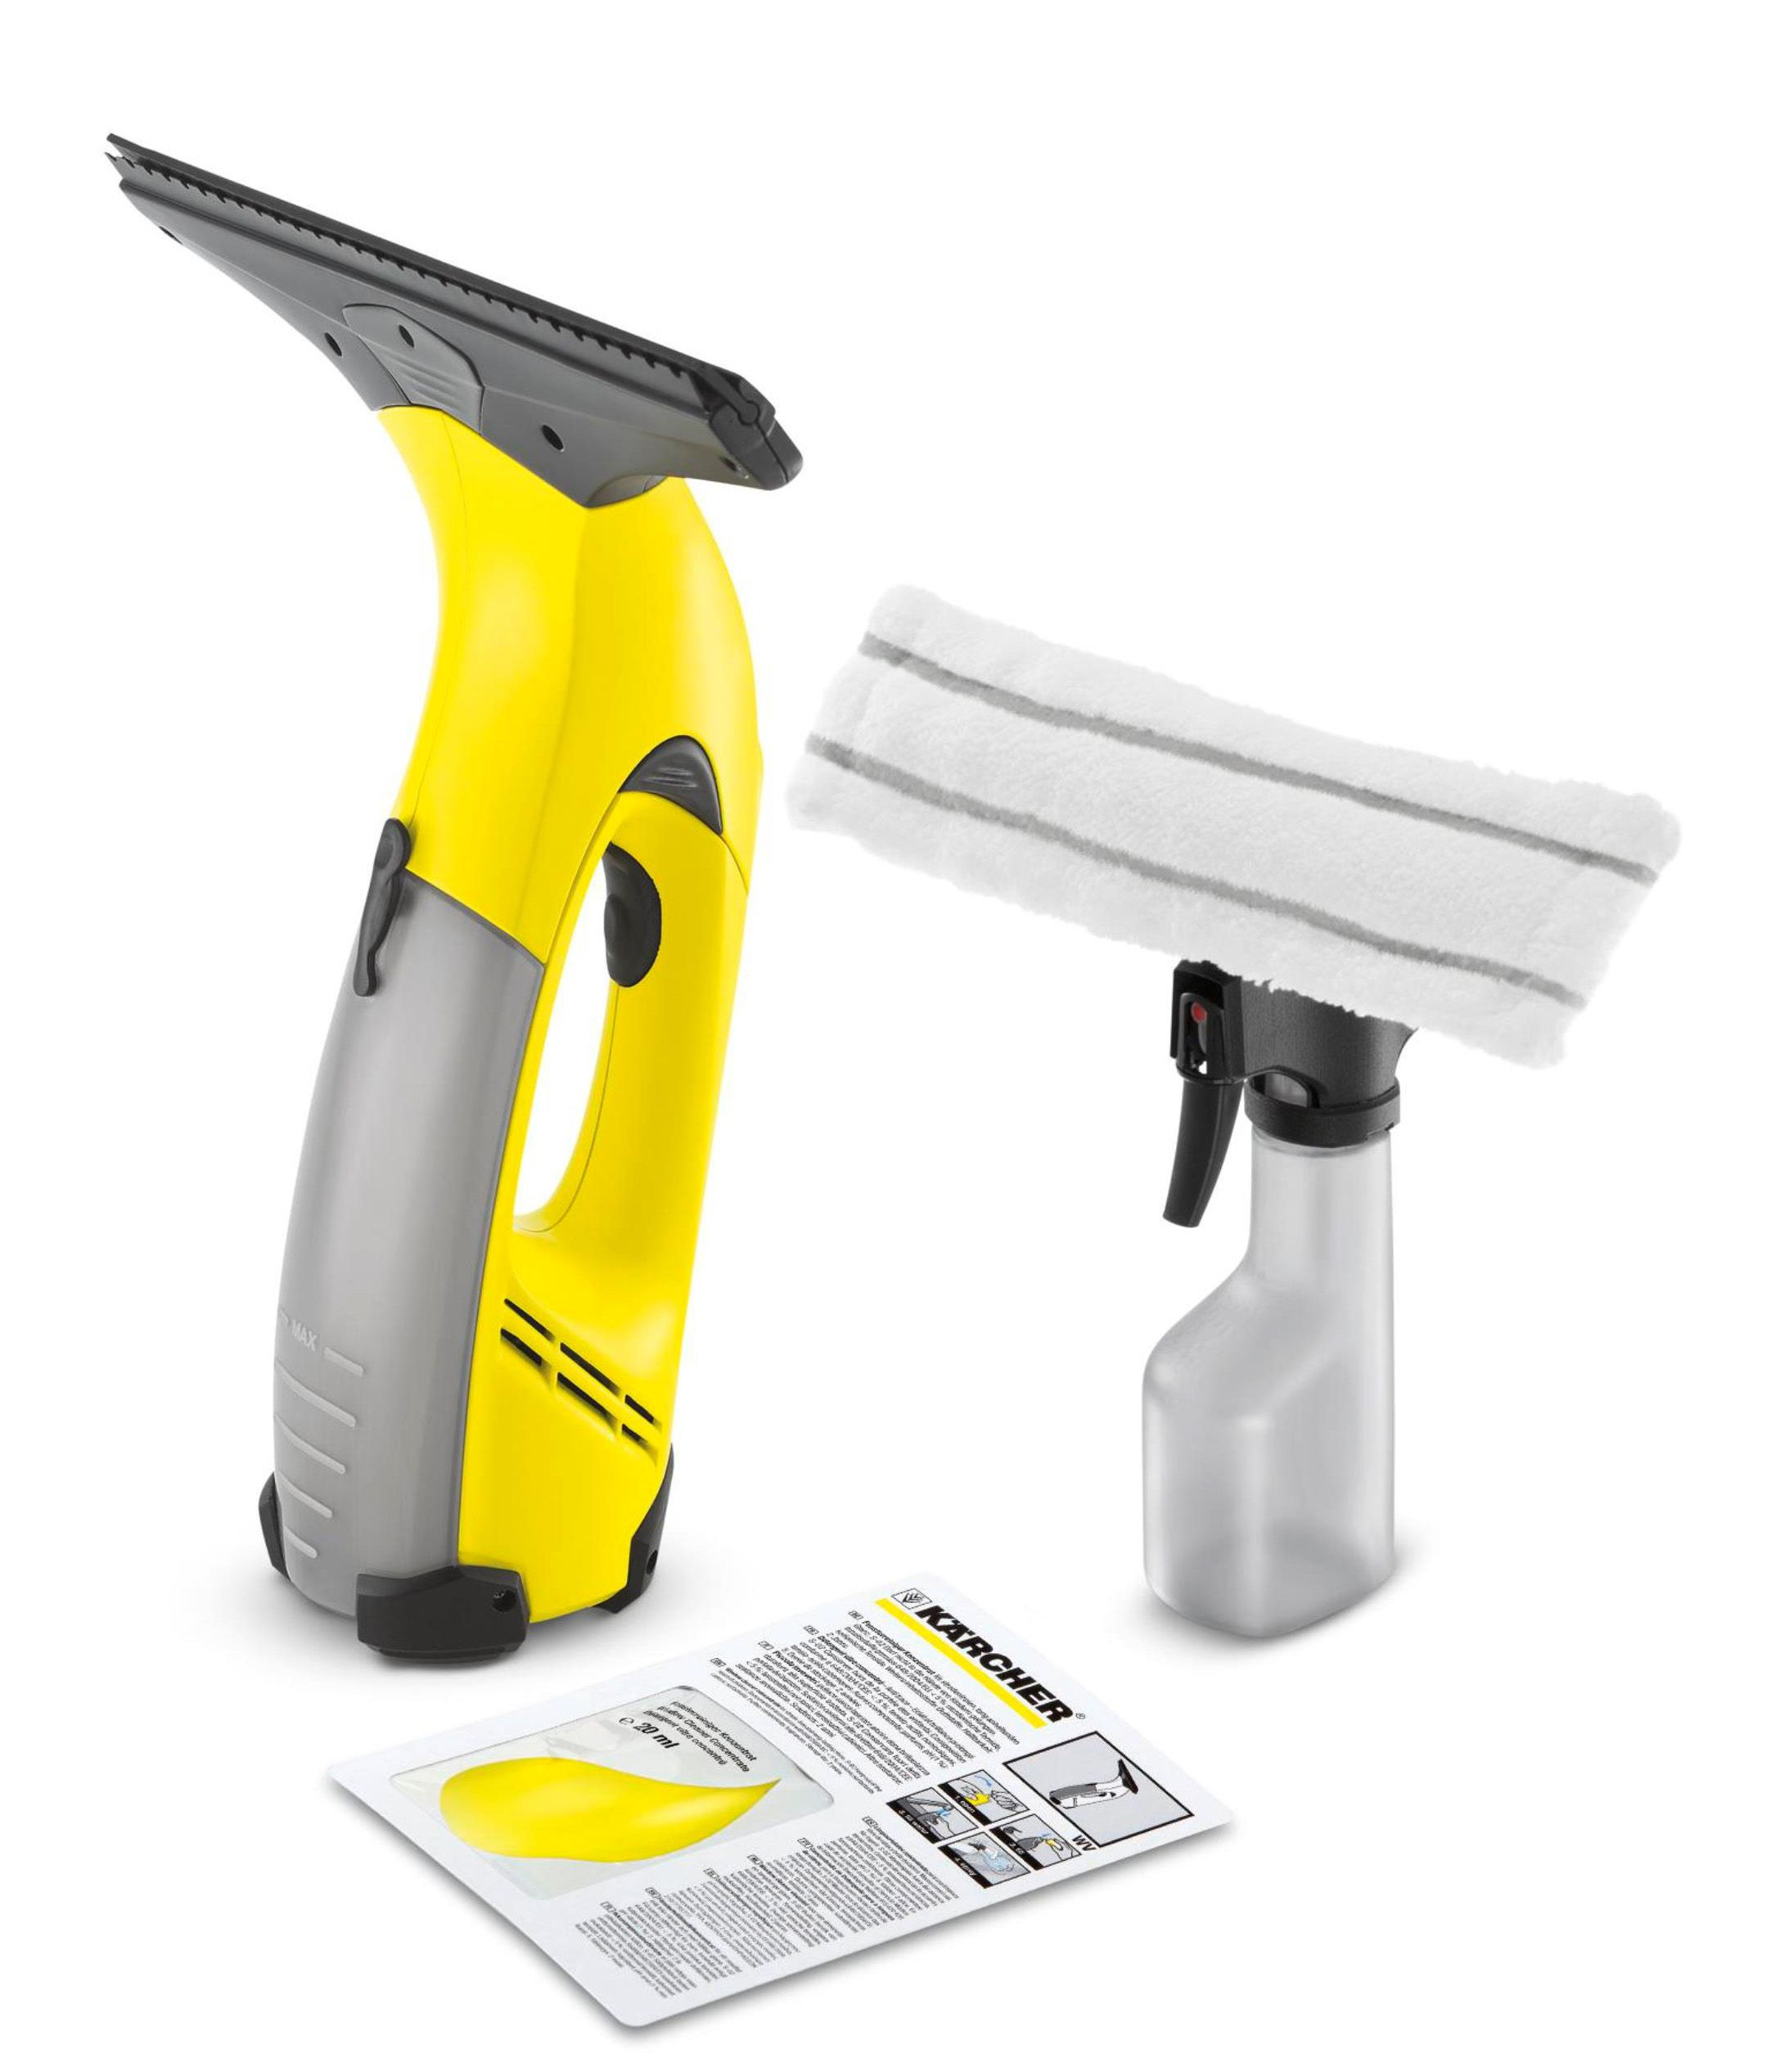 Karcher Classic Wv Classic Window Vac Was 163 54 Now 163 33